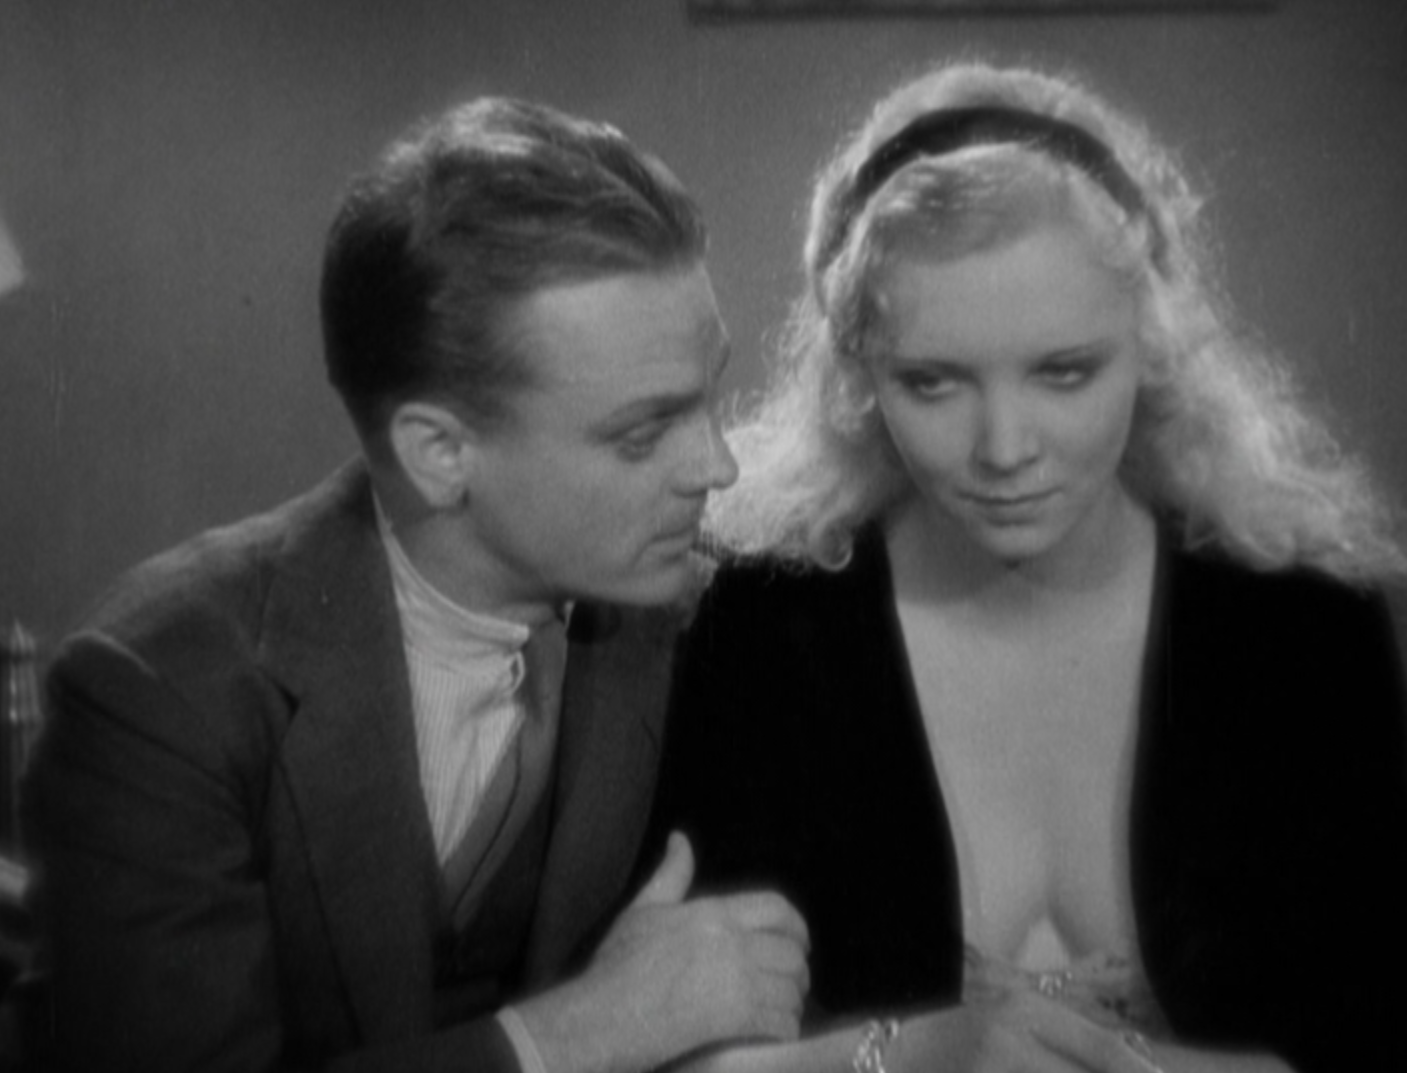 Winner Take All Cagney Virginia Bruce Marian Nixon pre-Code